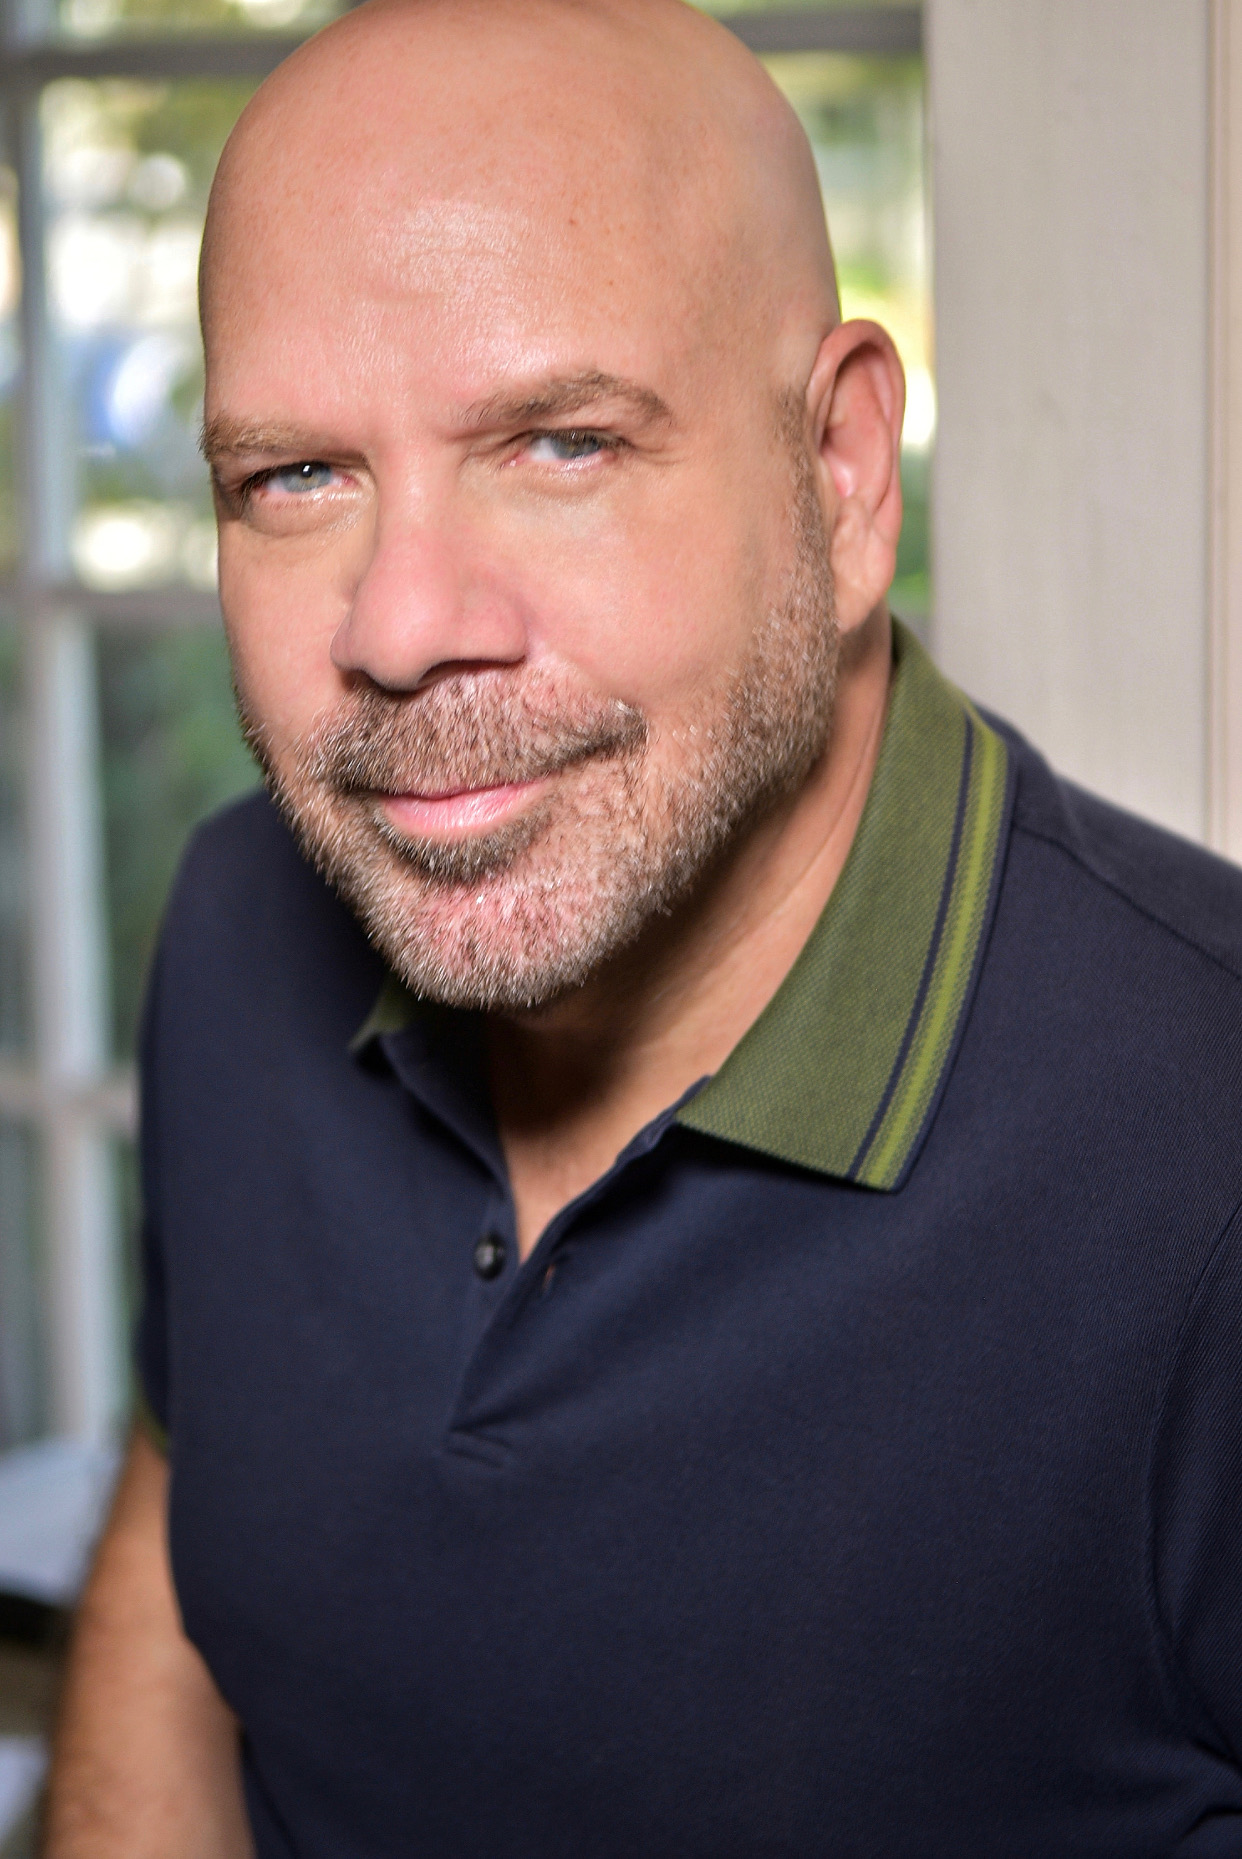 Actor Porno Gay Portugues jason stuart - wikipedia